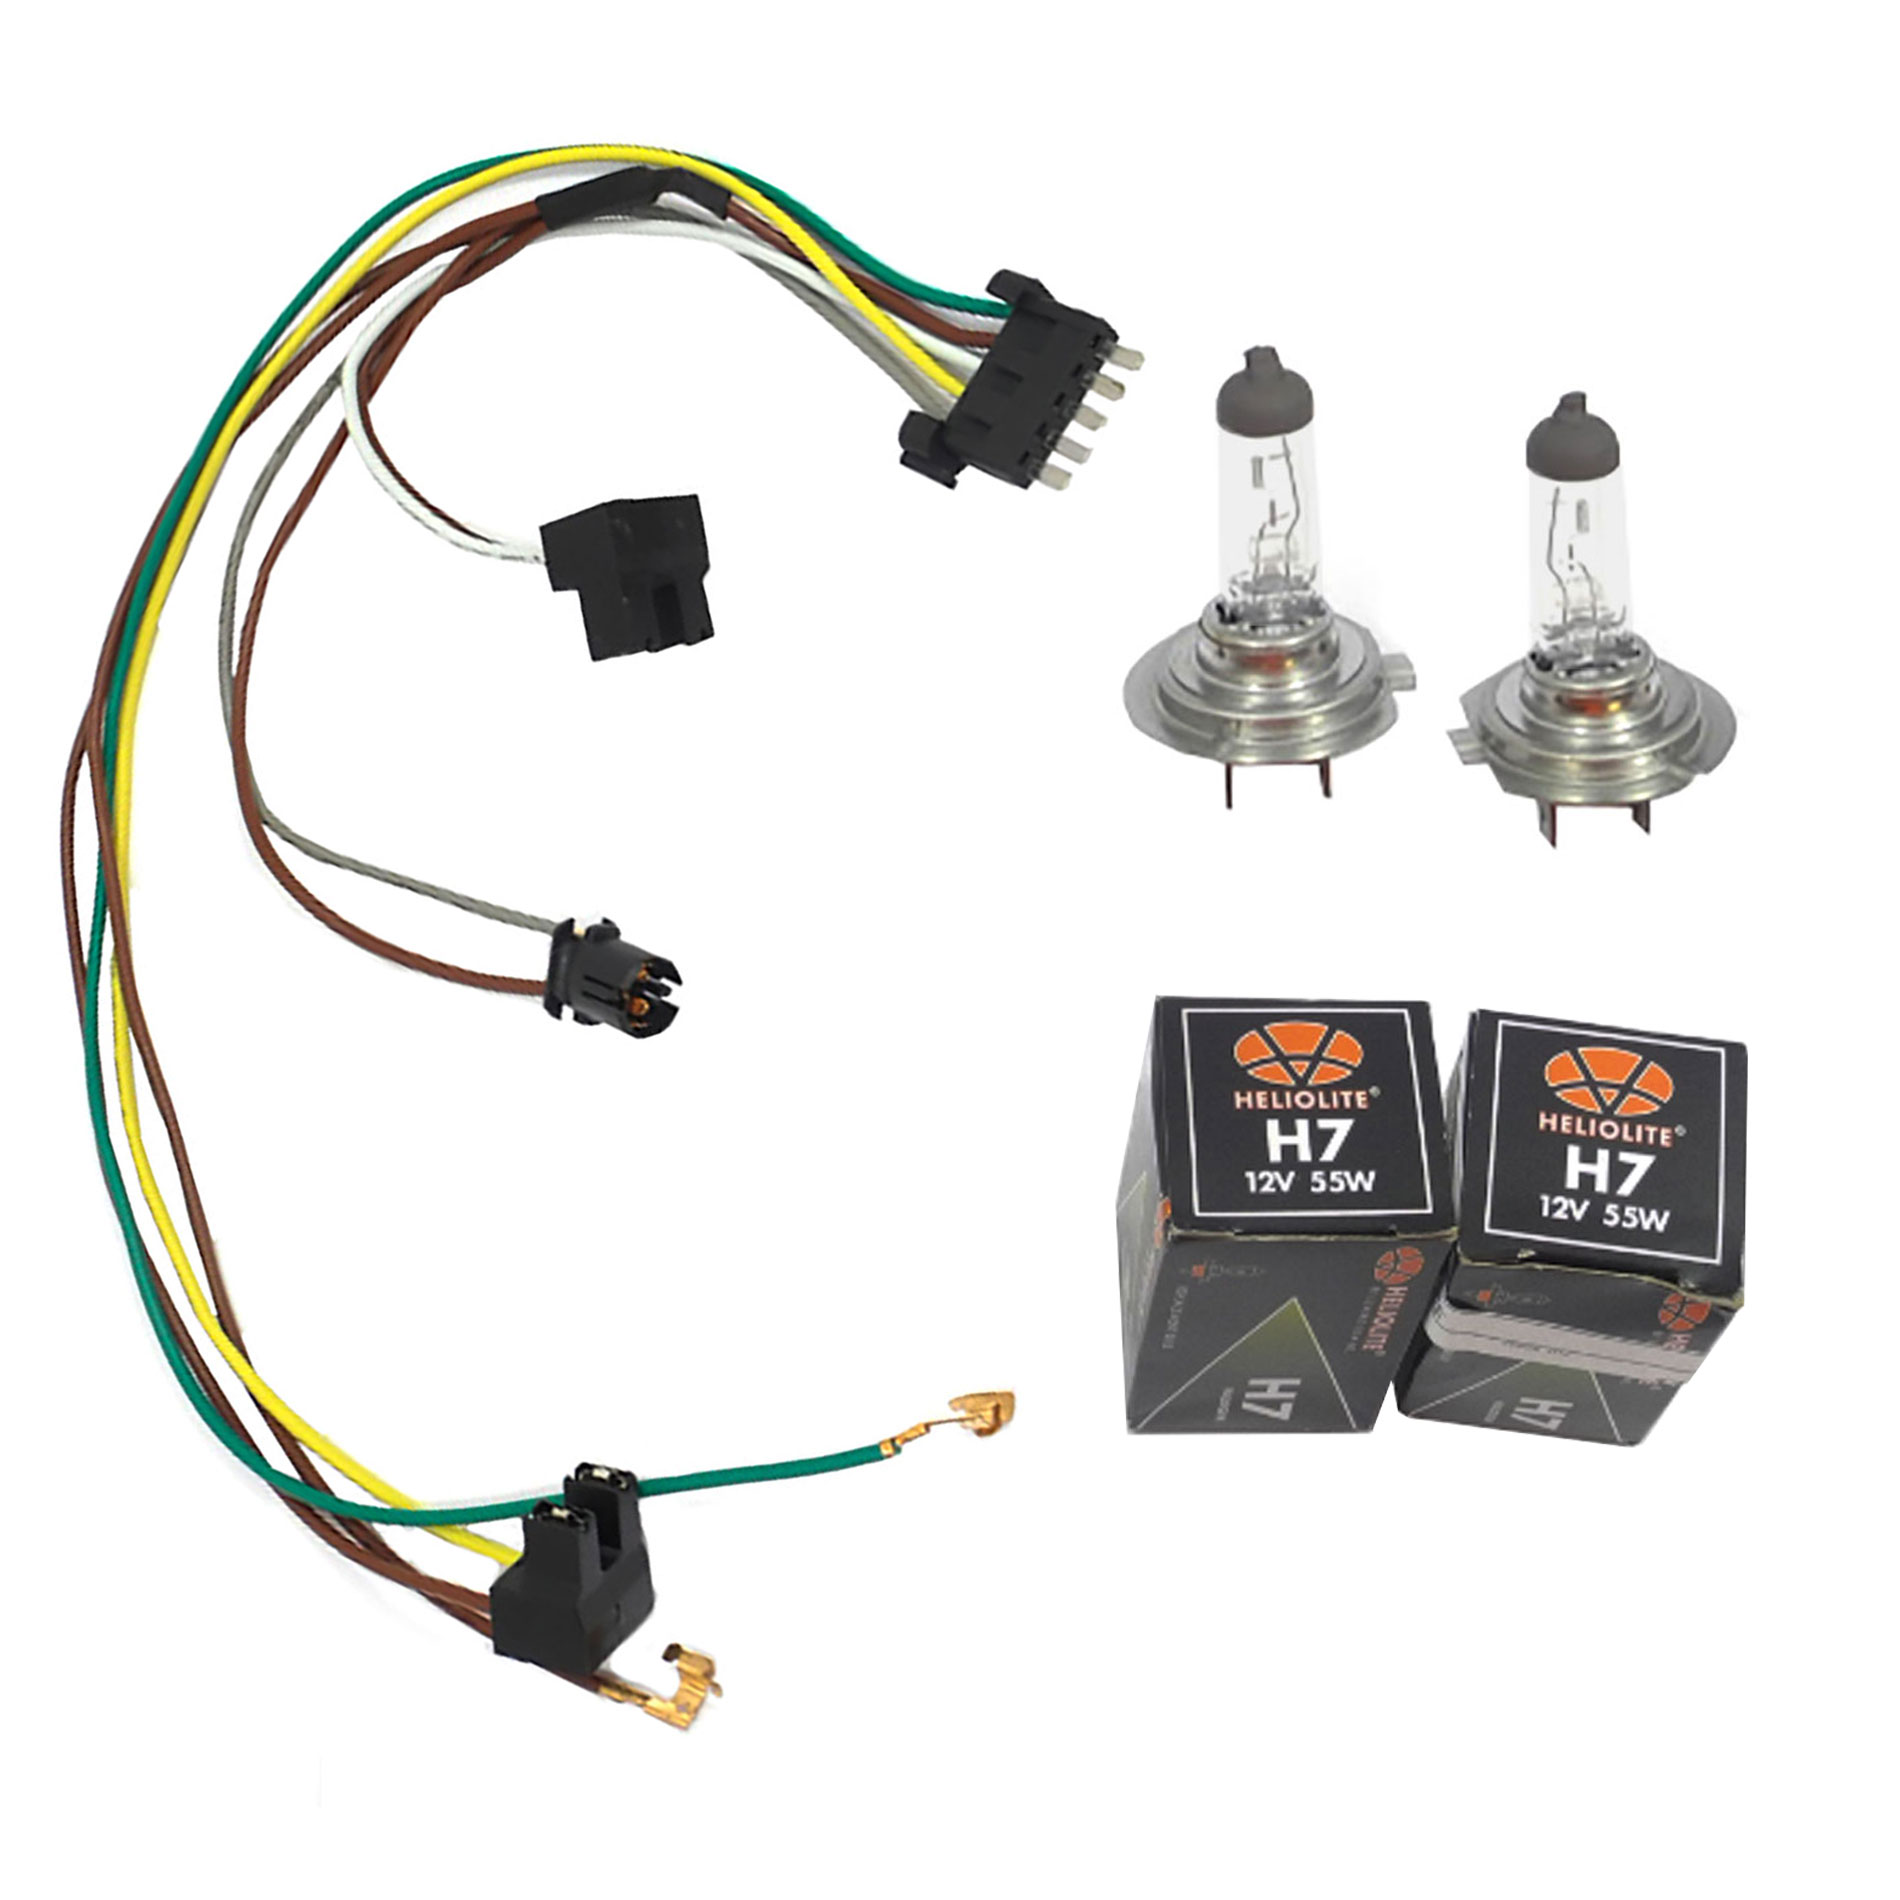 hight resolution of cf advance for 02 05 mercedes benz c230 c320 left or right headlight wiring harness and h7 55w headlight bulb 2002 2003 2004 2005 walmart com